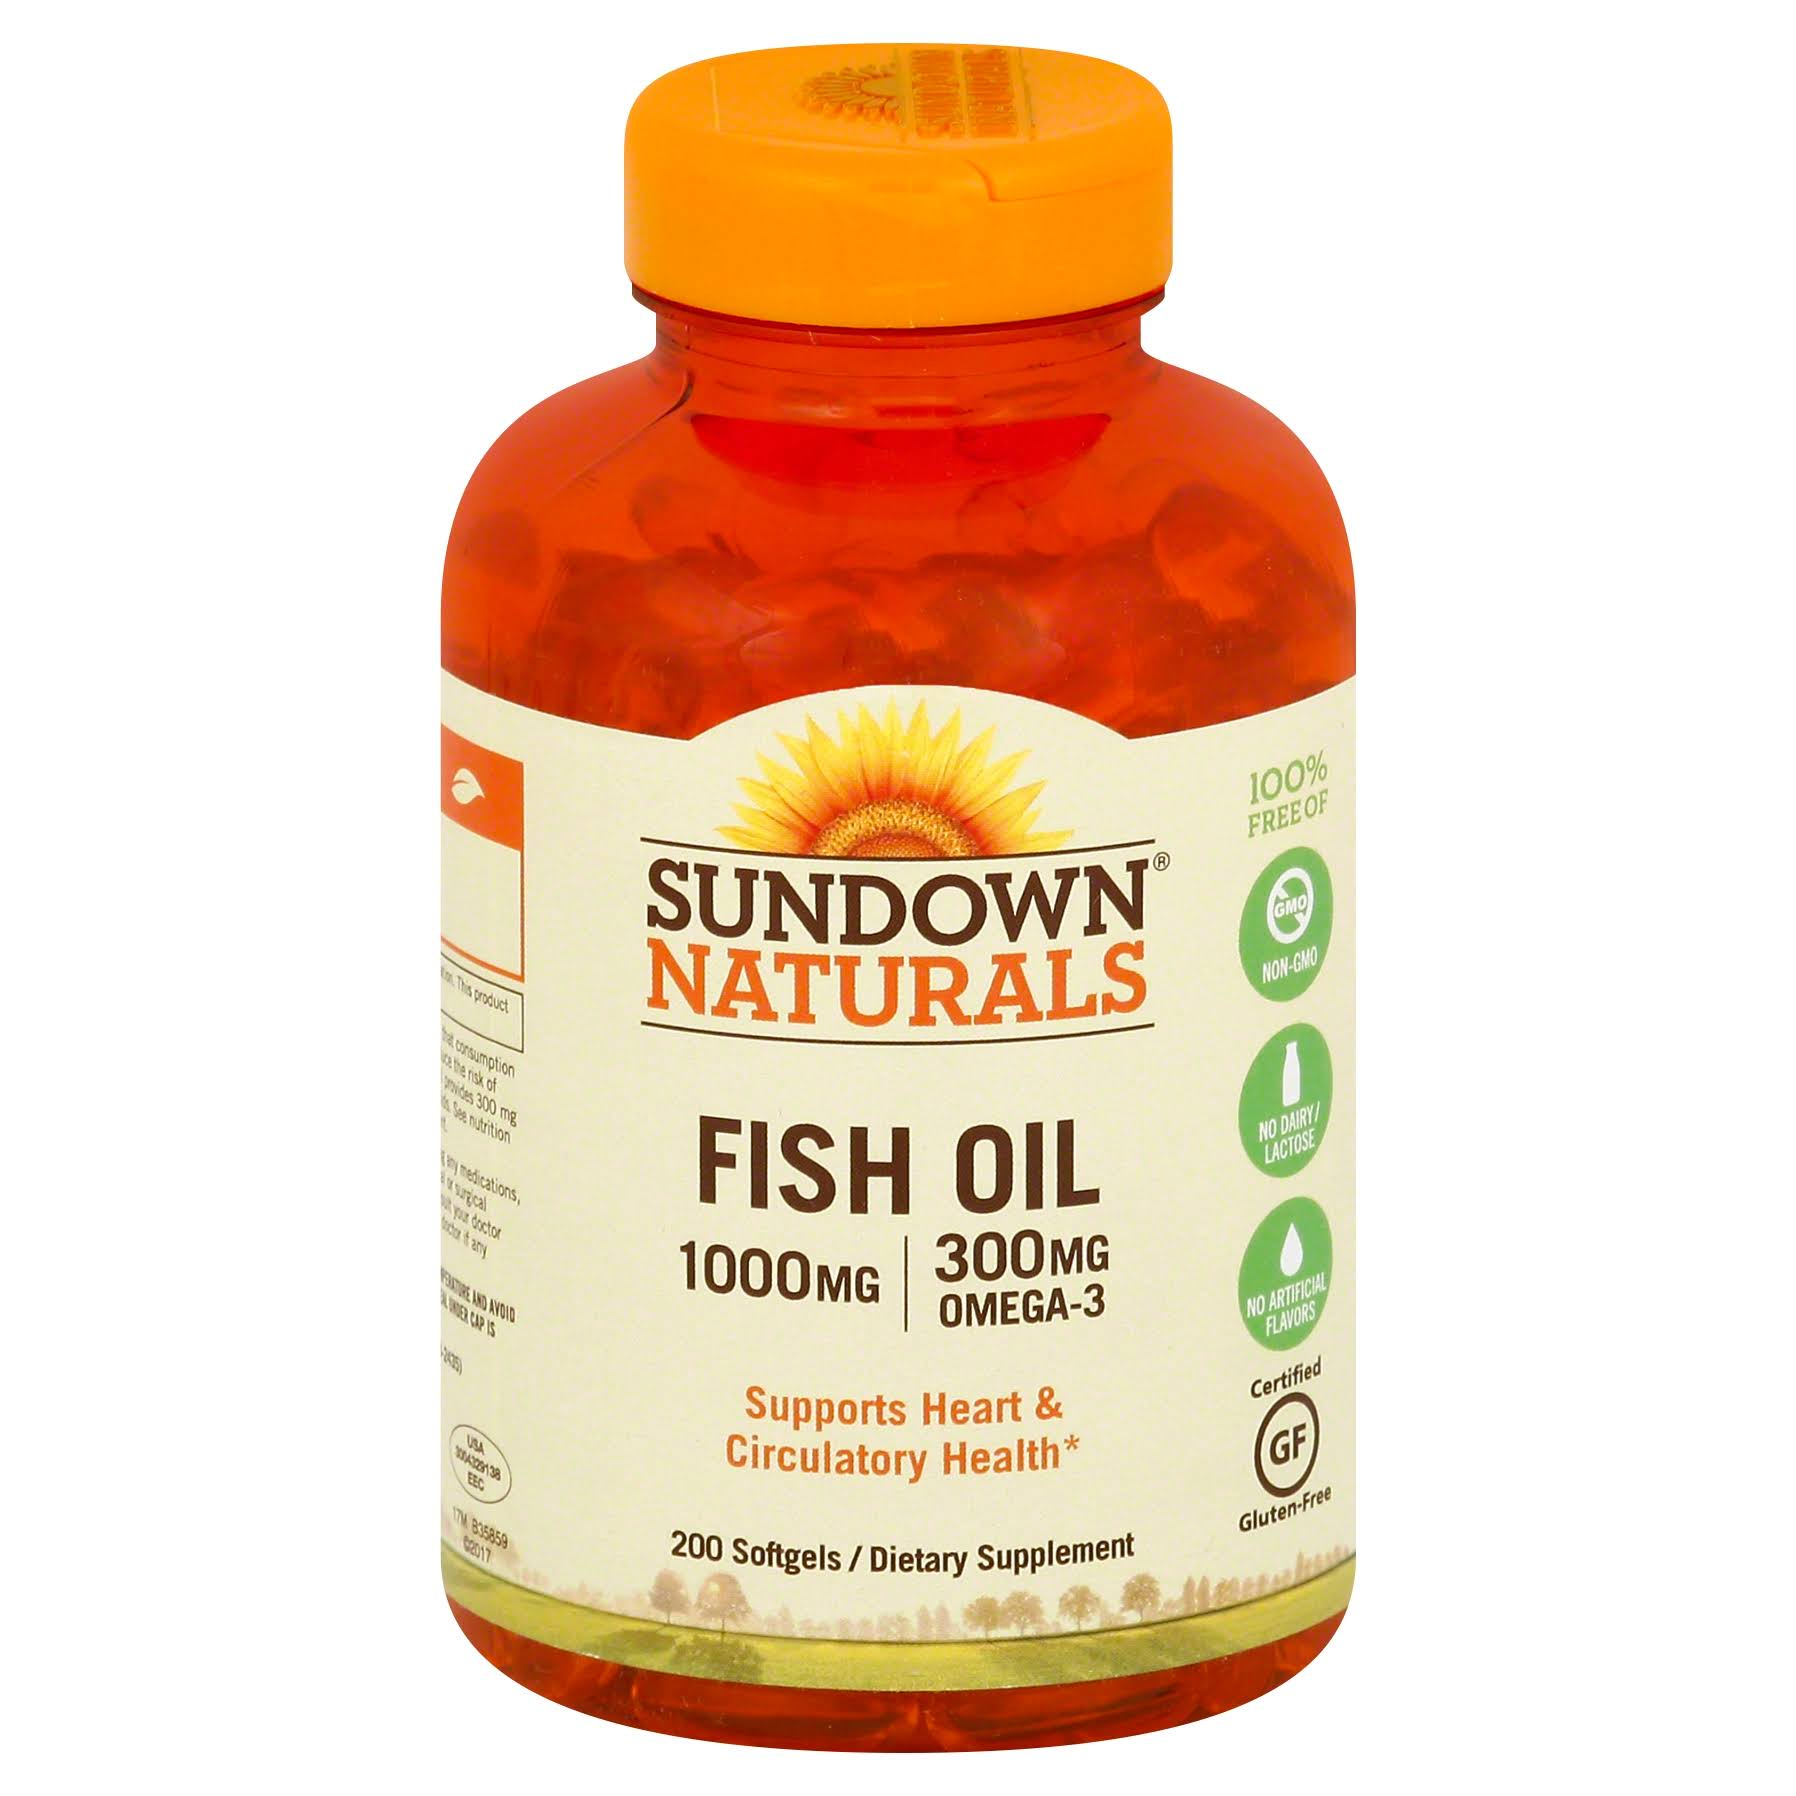 Sundown Naturals Fish Oil Supplement - 1000mg, 200ct